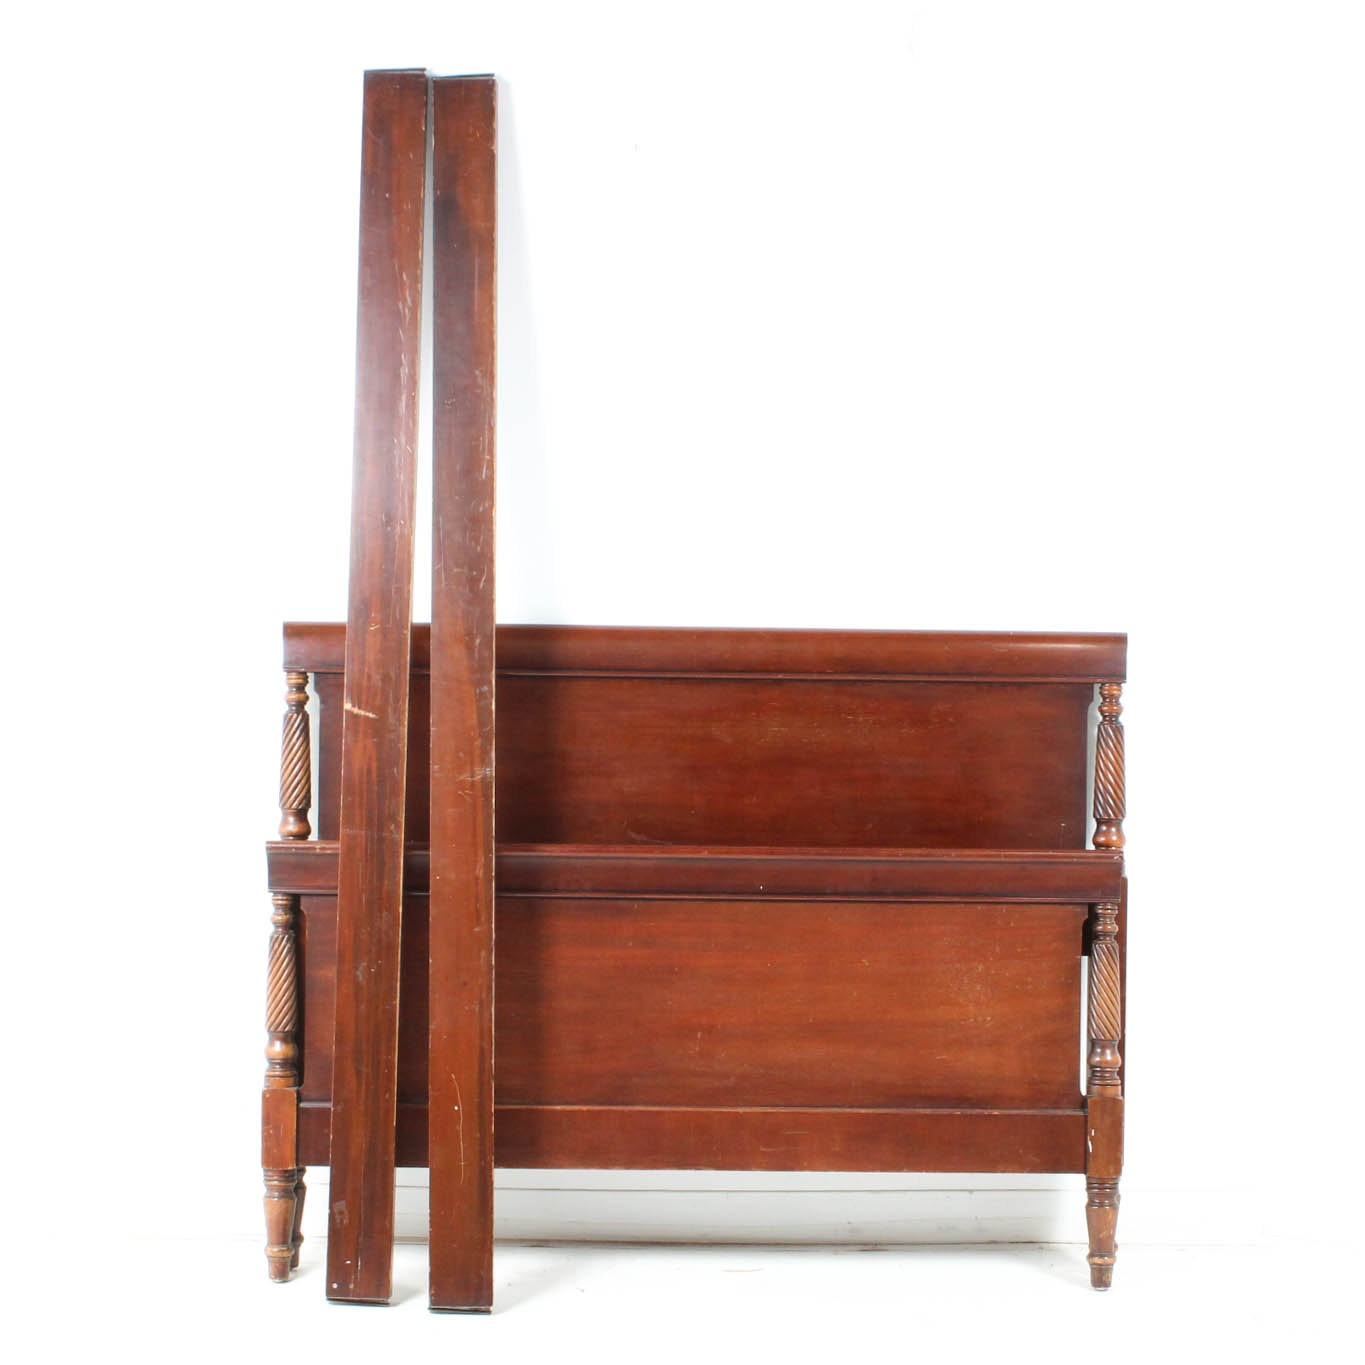 Solid Cherry Wood Bed Frame